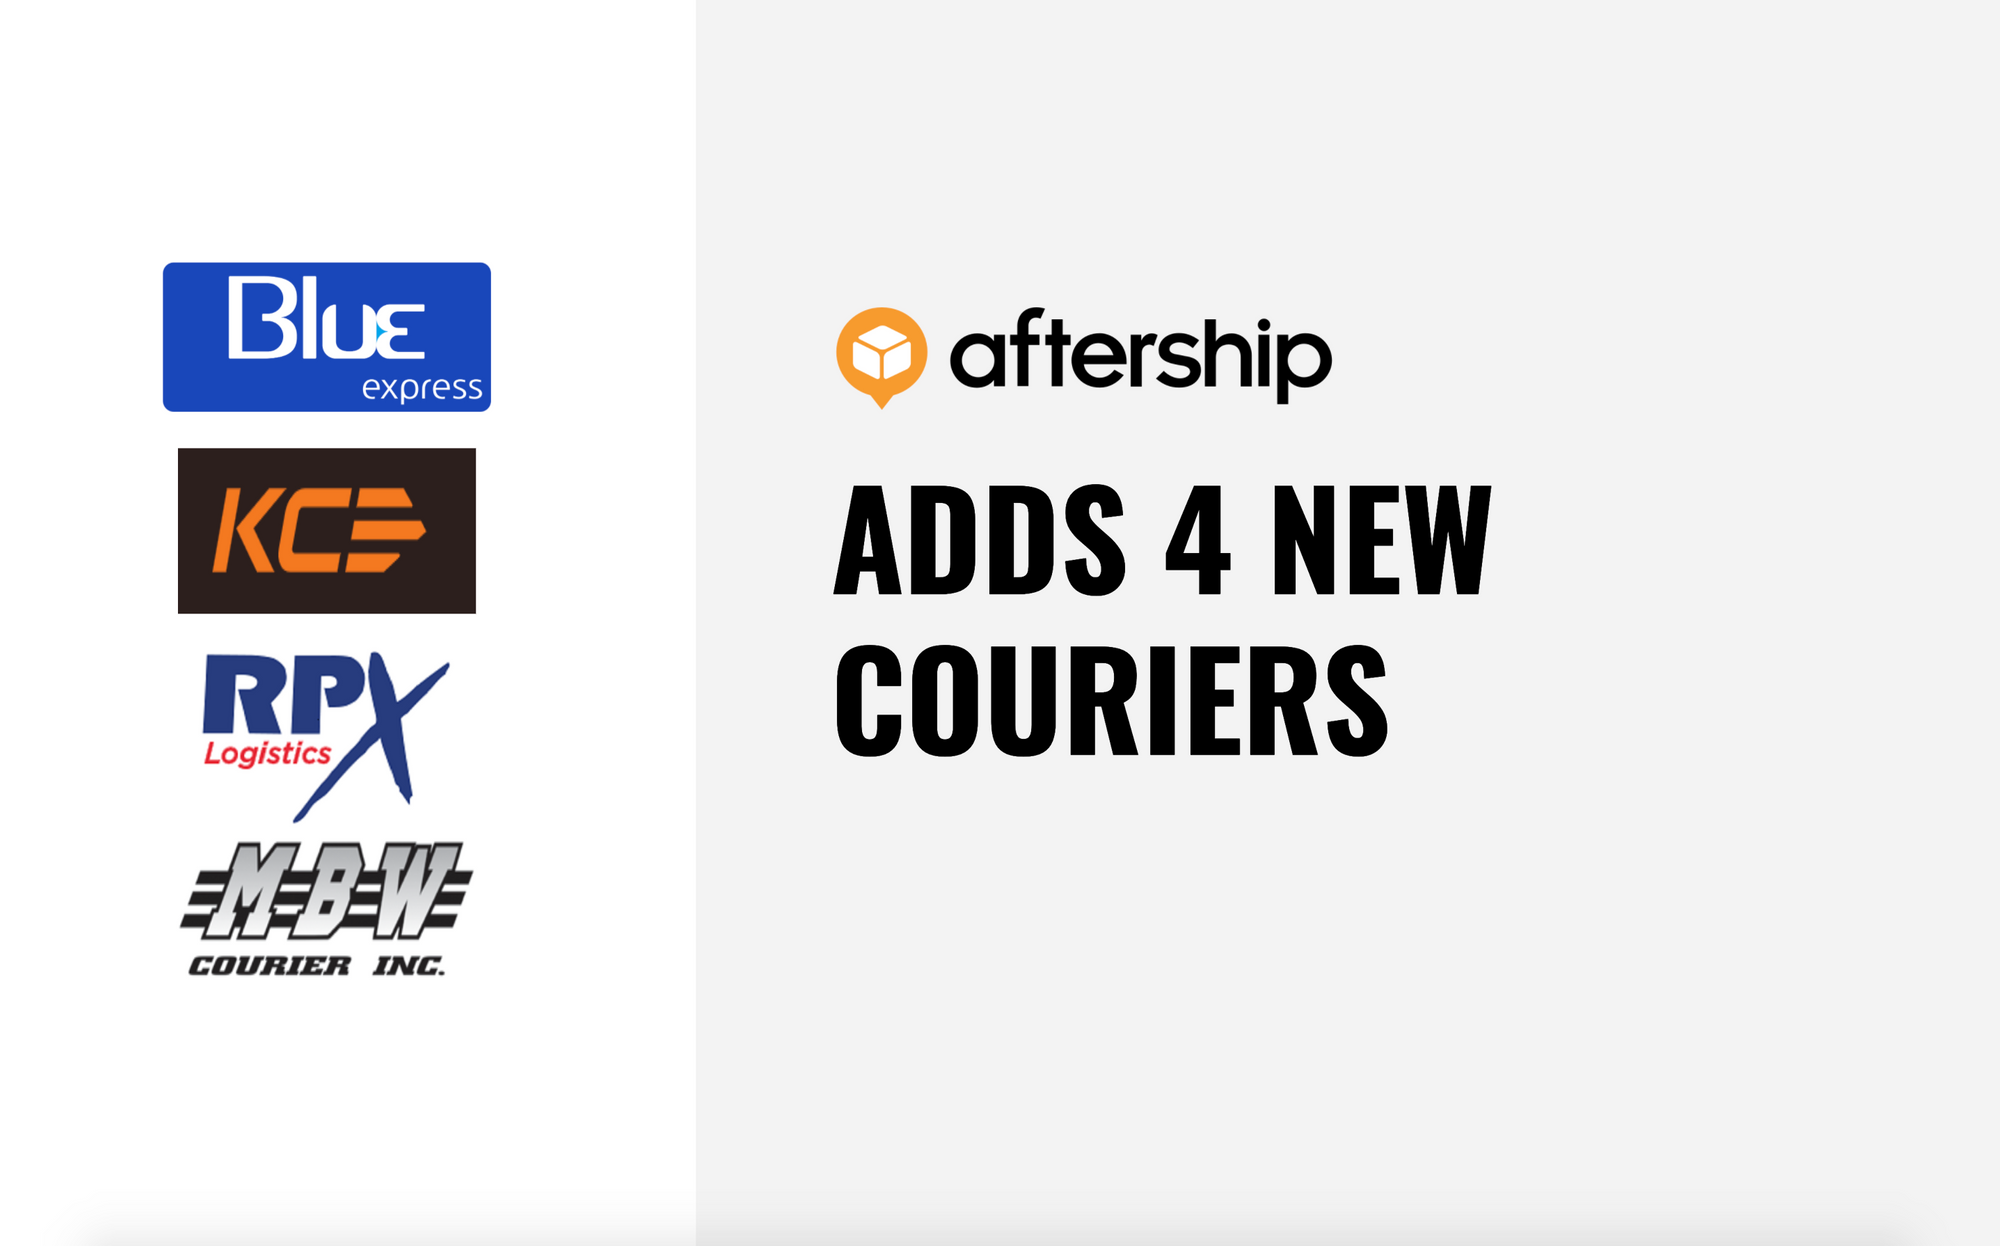 AfterShip adds 4 new couriers this week (4th Jan 2021-8th Jan 2021)